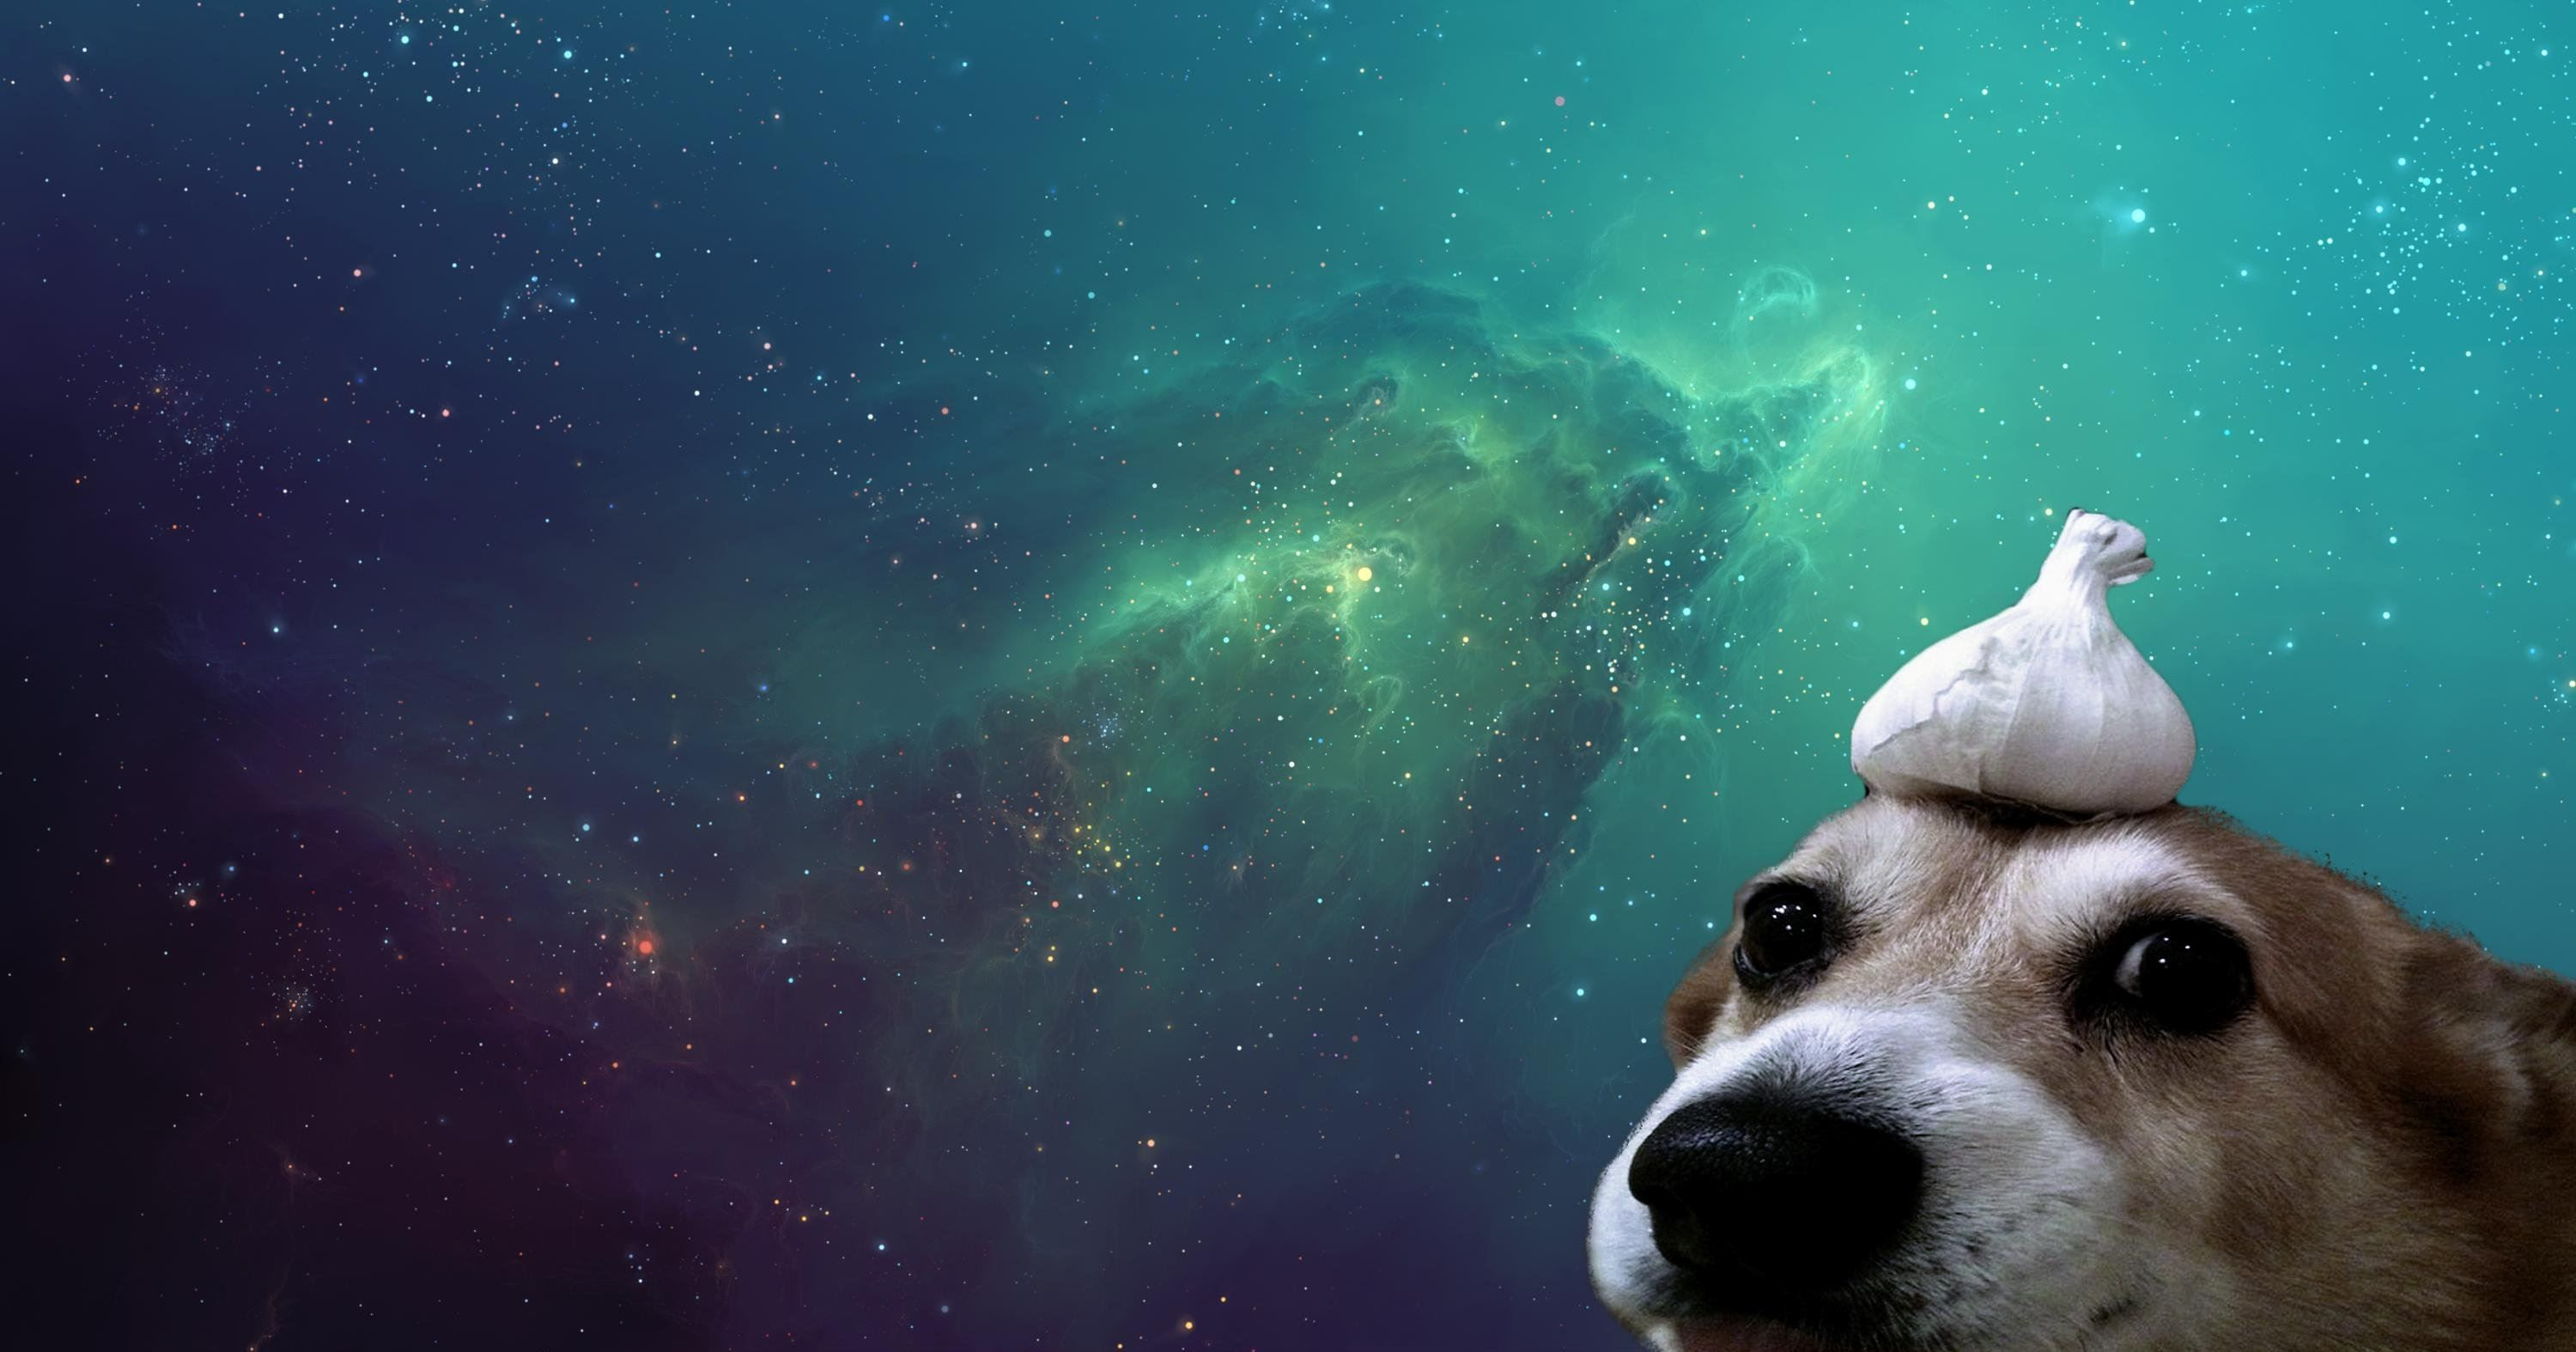 Dog Aesthetic Wallpapers Top Free Dog Aesthetic Backgrounds Wallpaperaccess